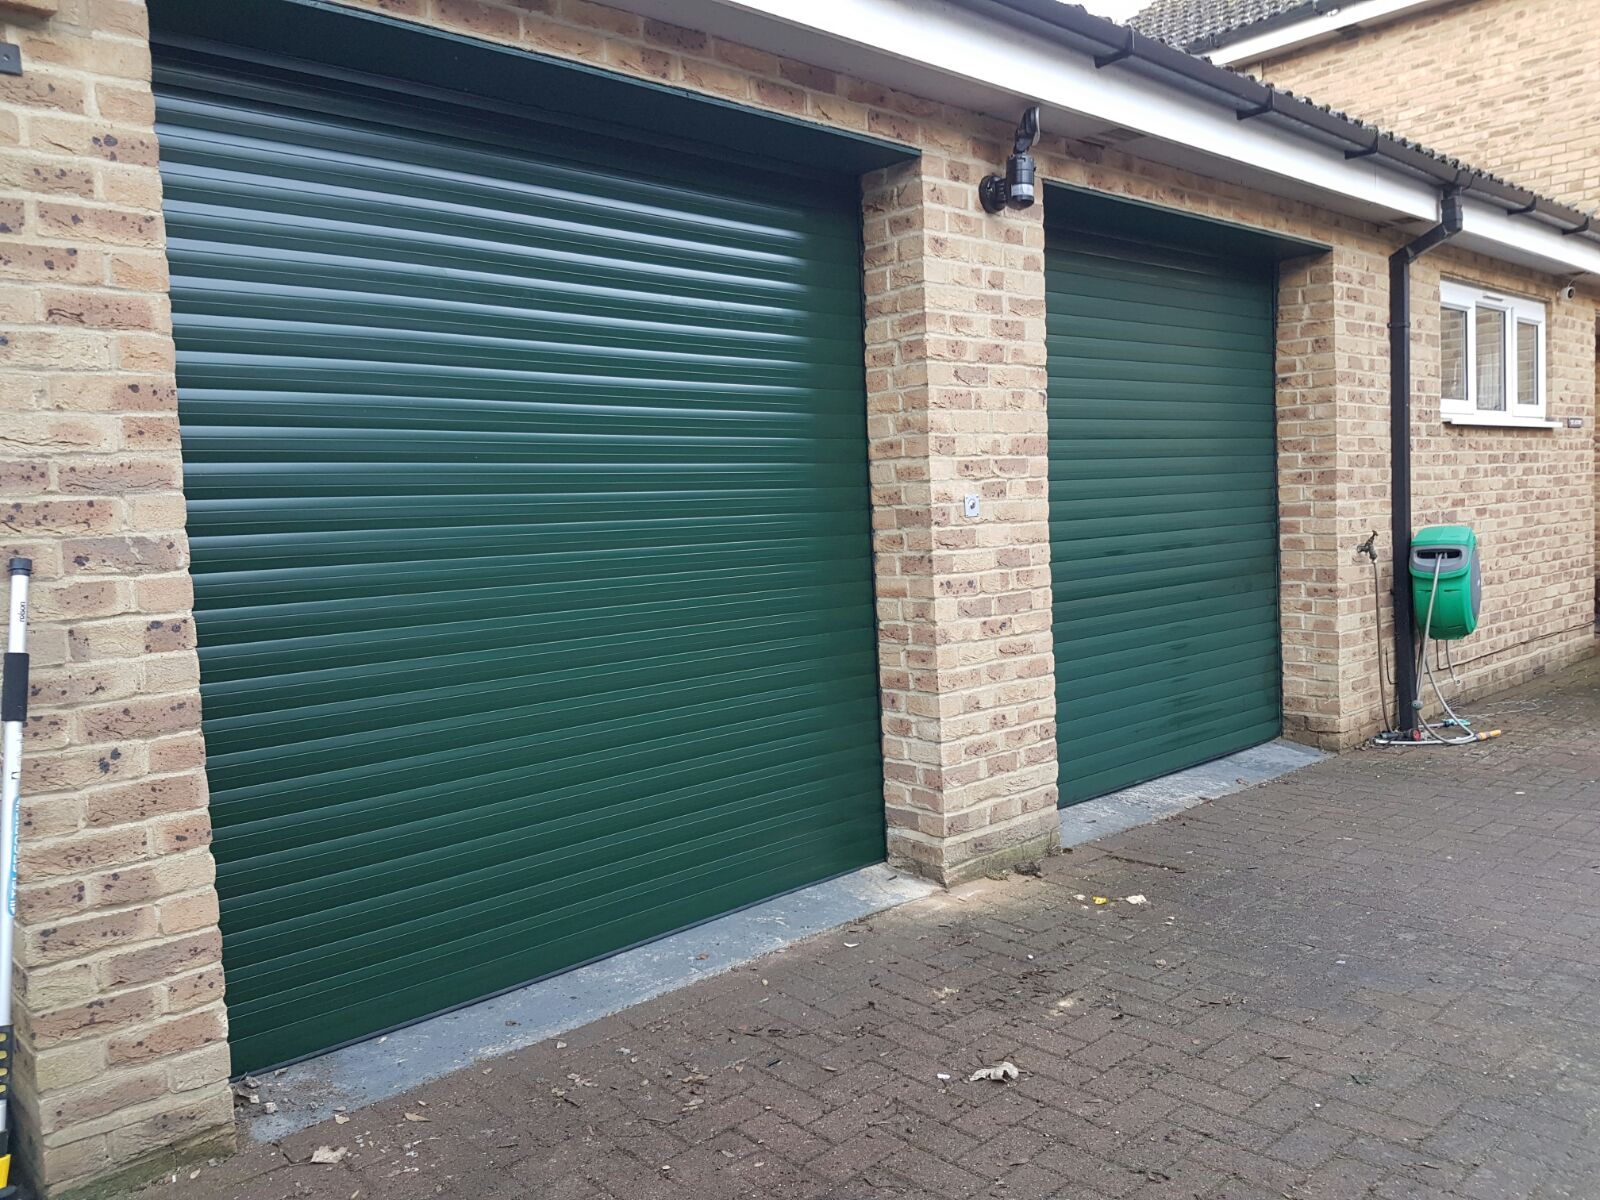 Roller garage doors and roller door installation rollerdor many thanks for the garage door was easy to fit and works great i would recommend to anyone great service and nice product pleasure to deal with rubansaba